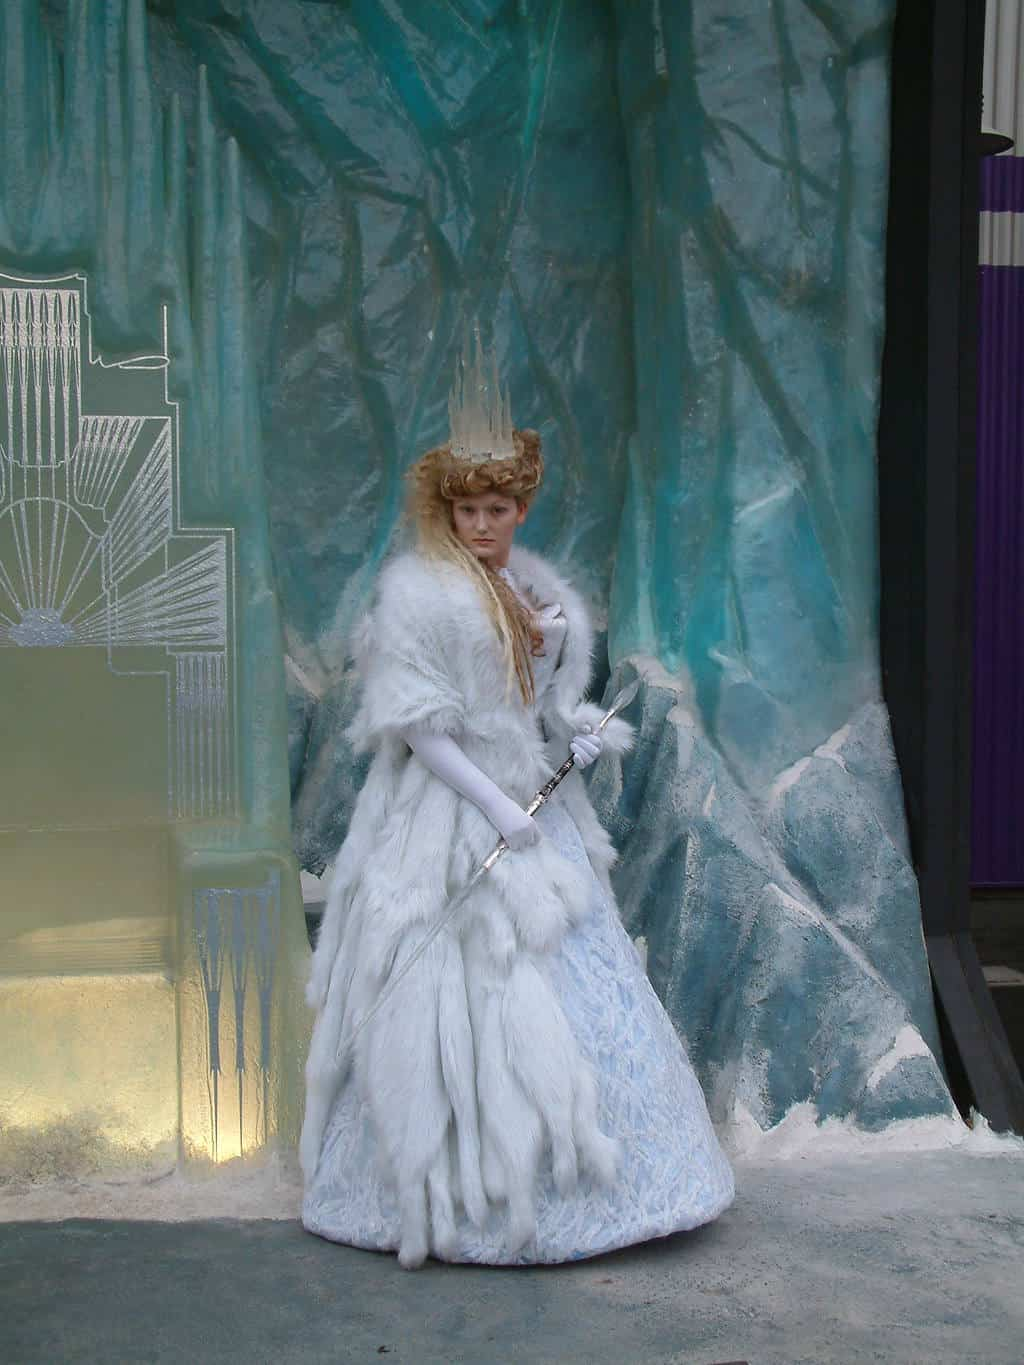 The Queen of Narnia came out for Meet'n'Greets when the first Narnia movie hit the theaters, but after a few months she disappeared. Since then she only came back once for a special event.